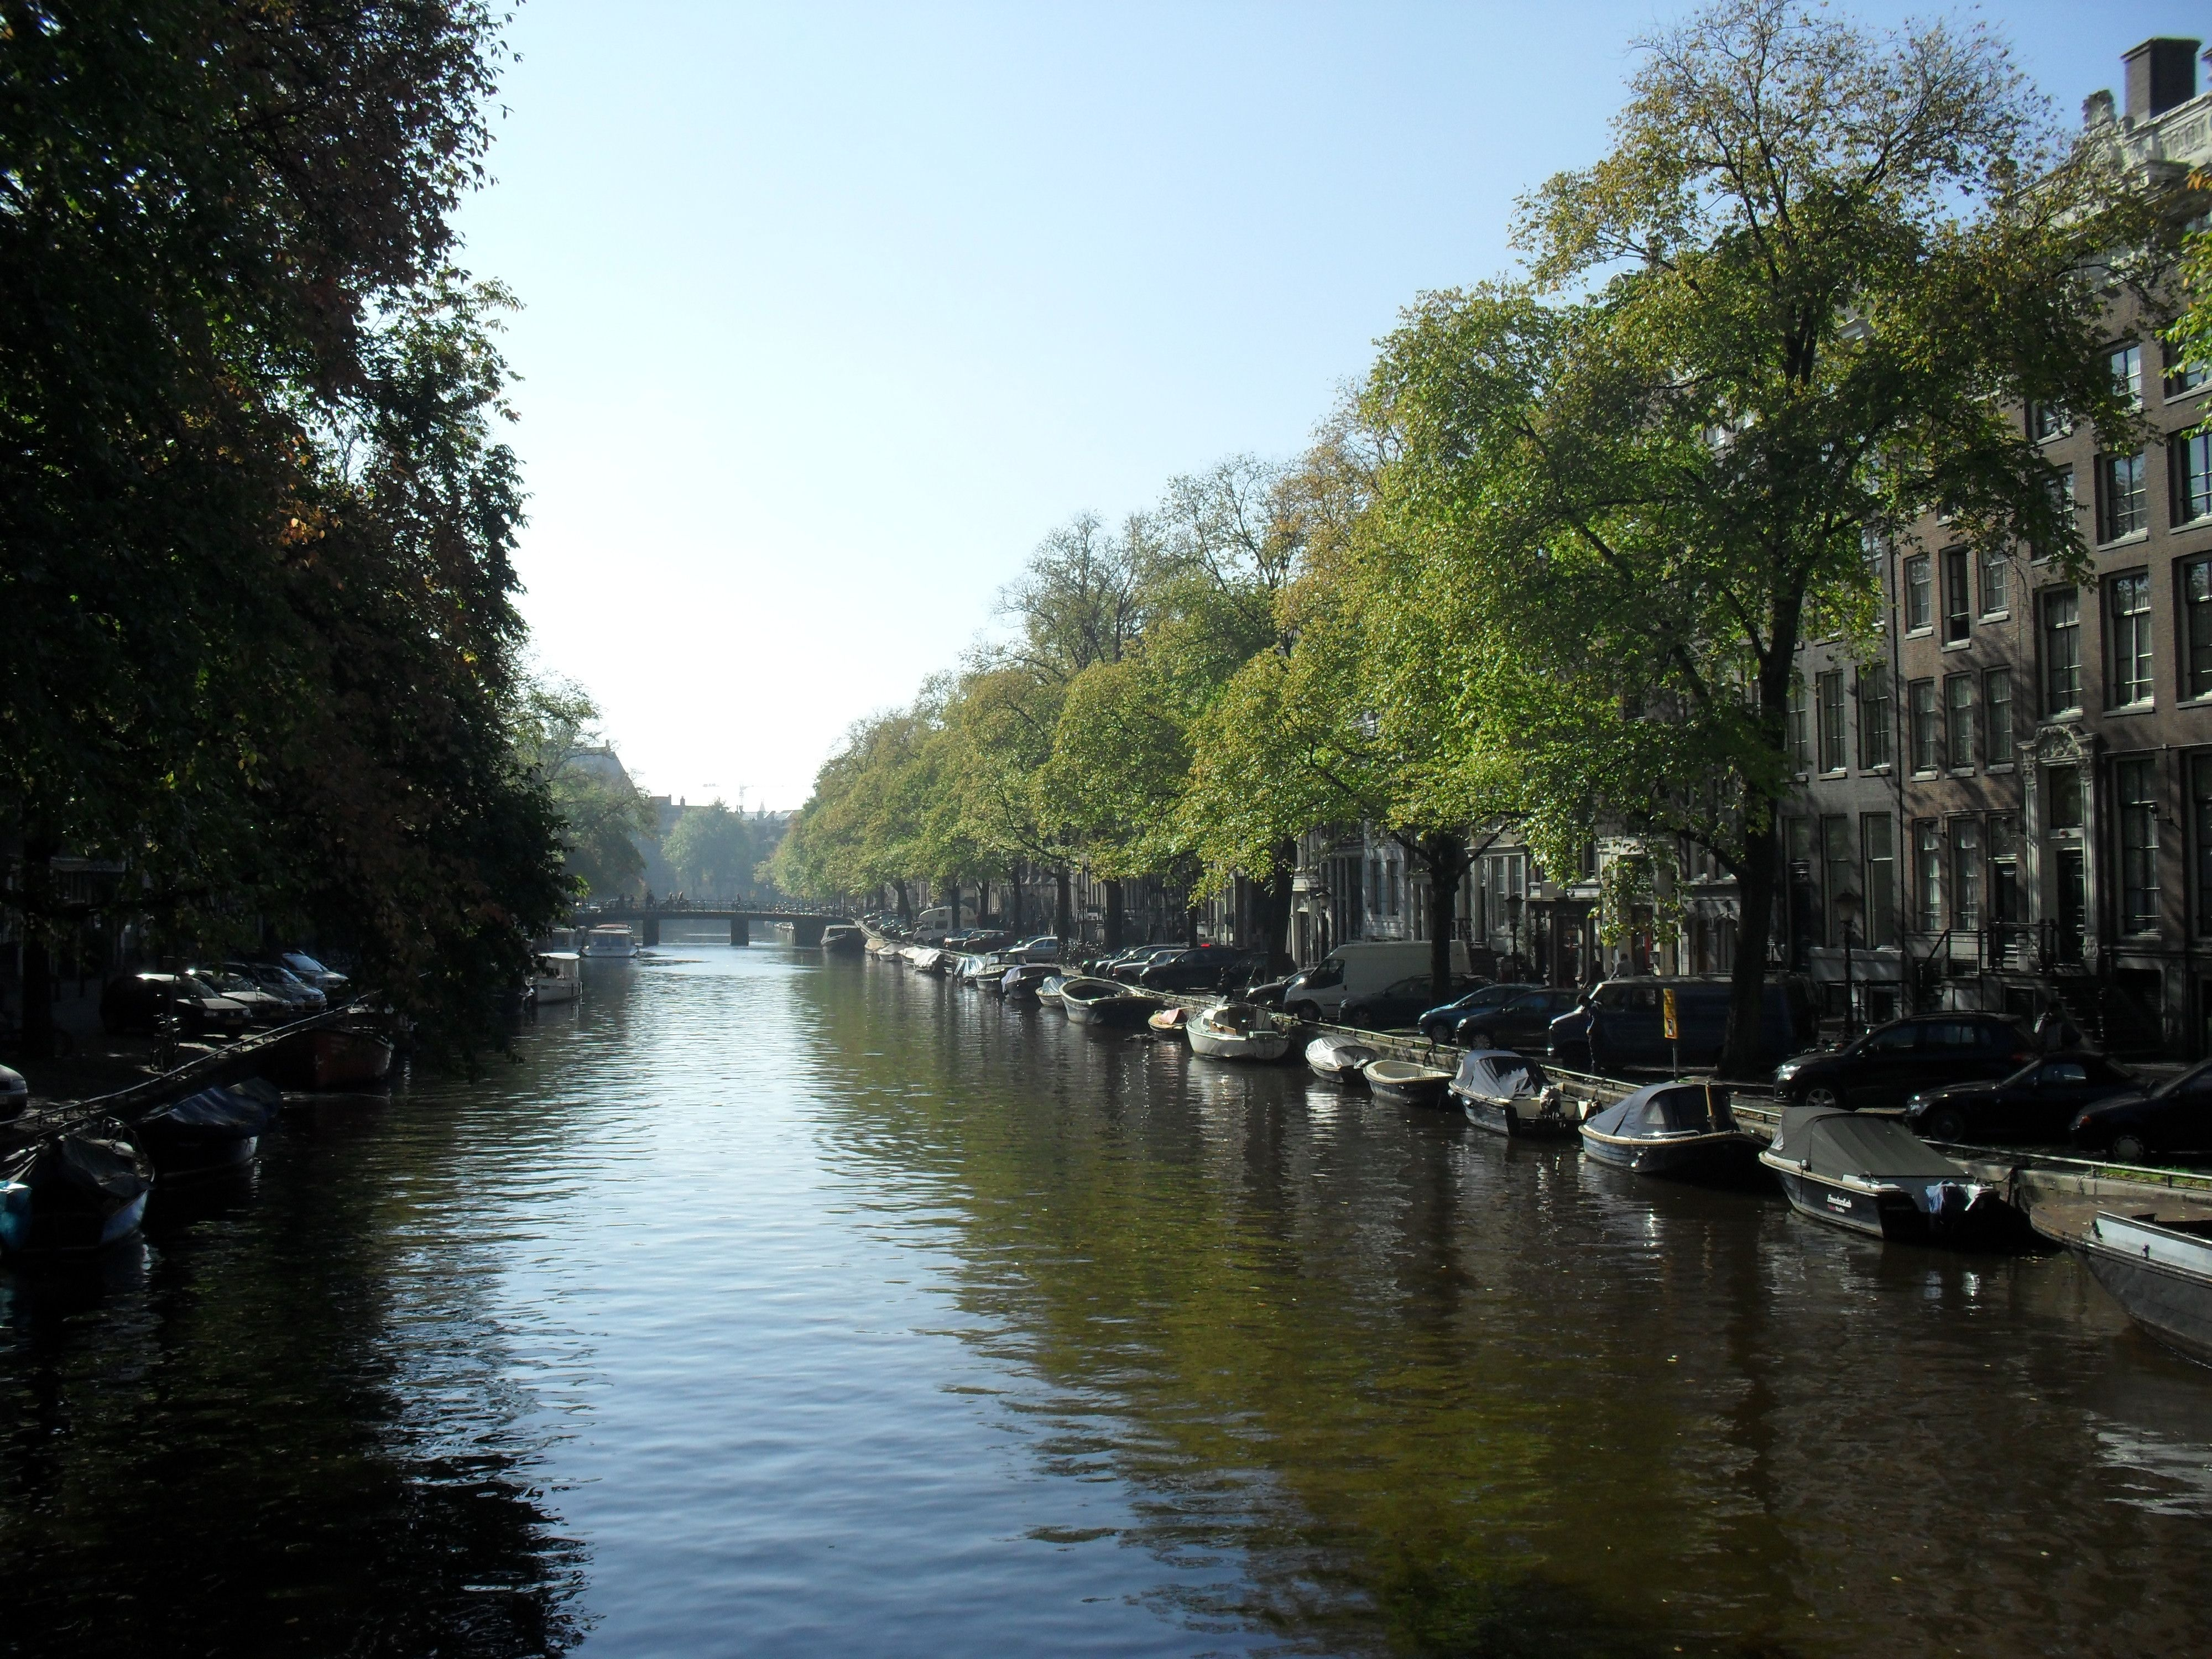 Amsterdam, Holland - we hired a little pedal bike and chugged around the canals in the sunshine. So much fun! Made me feel like a kid again.